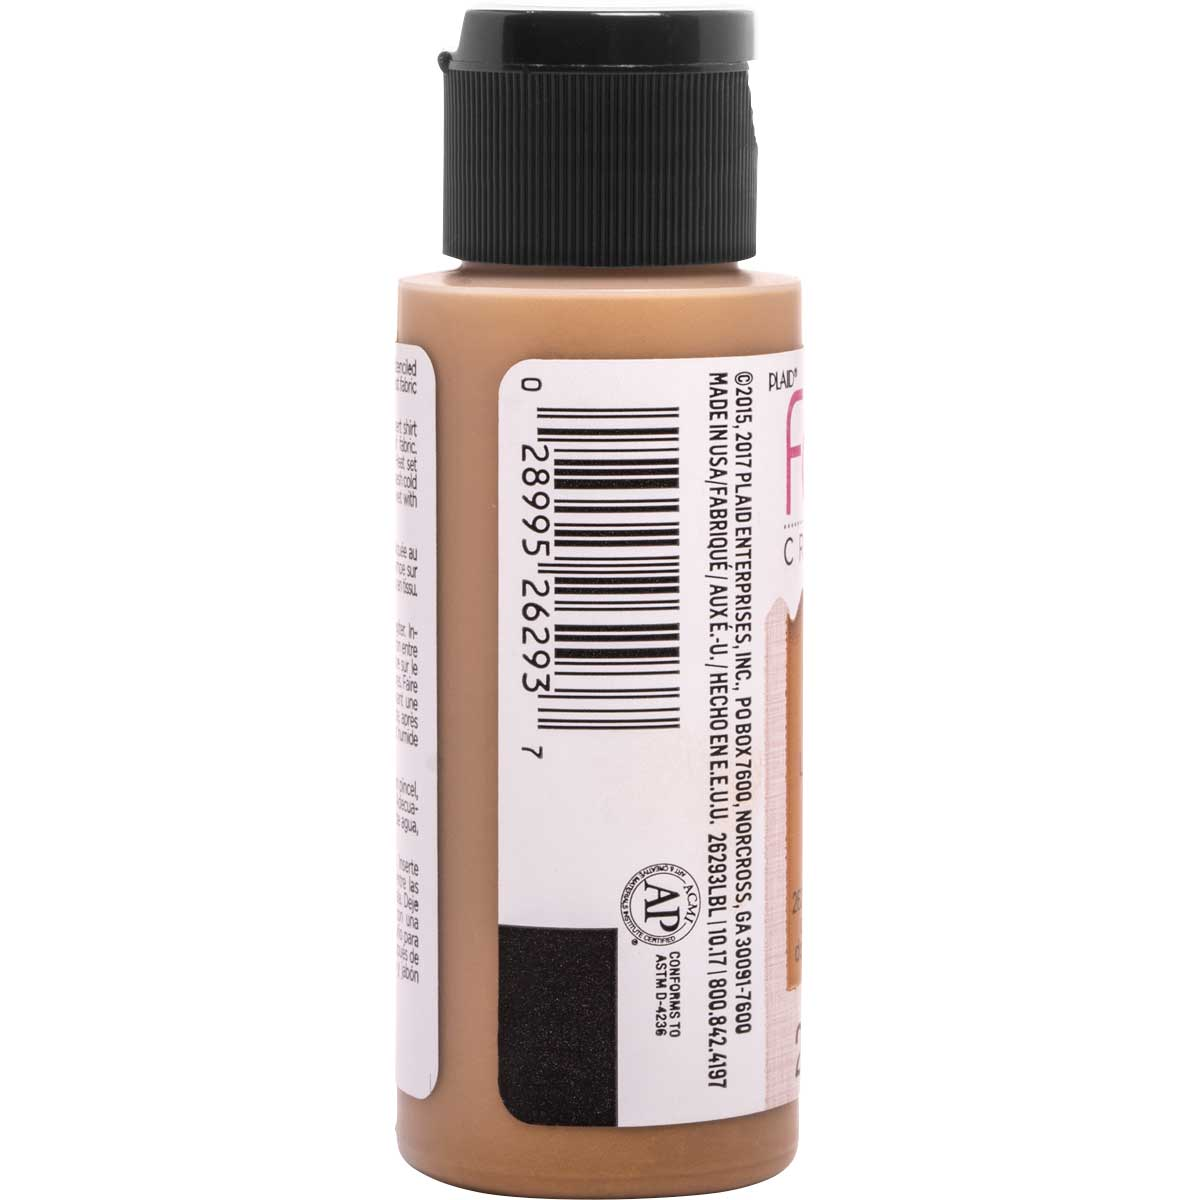 Fabric Creations™ Soft Fabric Inks - Metallic Antique Gold, 2 oz.